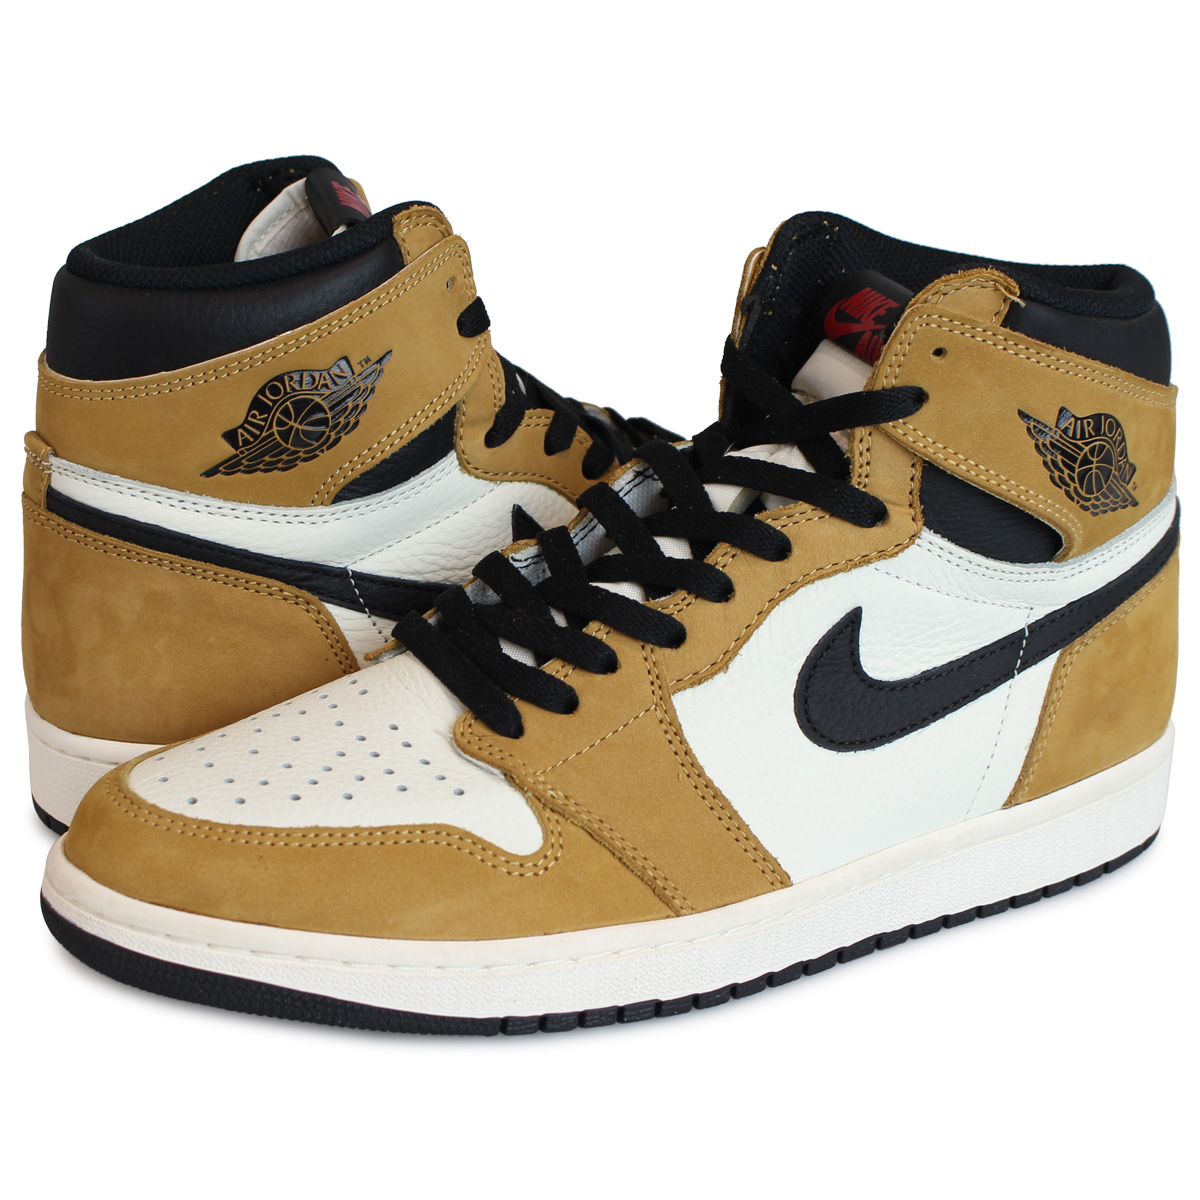 reputable site new collection where can i buy Nike NIKE Air Jordan 1 nostalgic high sneakers men AIR JORDAN 1 RETRO HIGH  OG ROOKIE OF THE YEAR brown 555,088-700